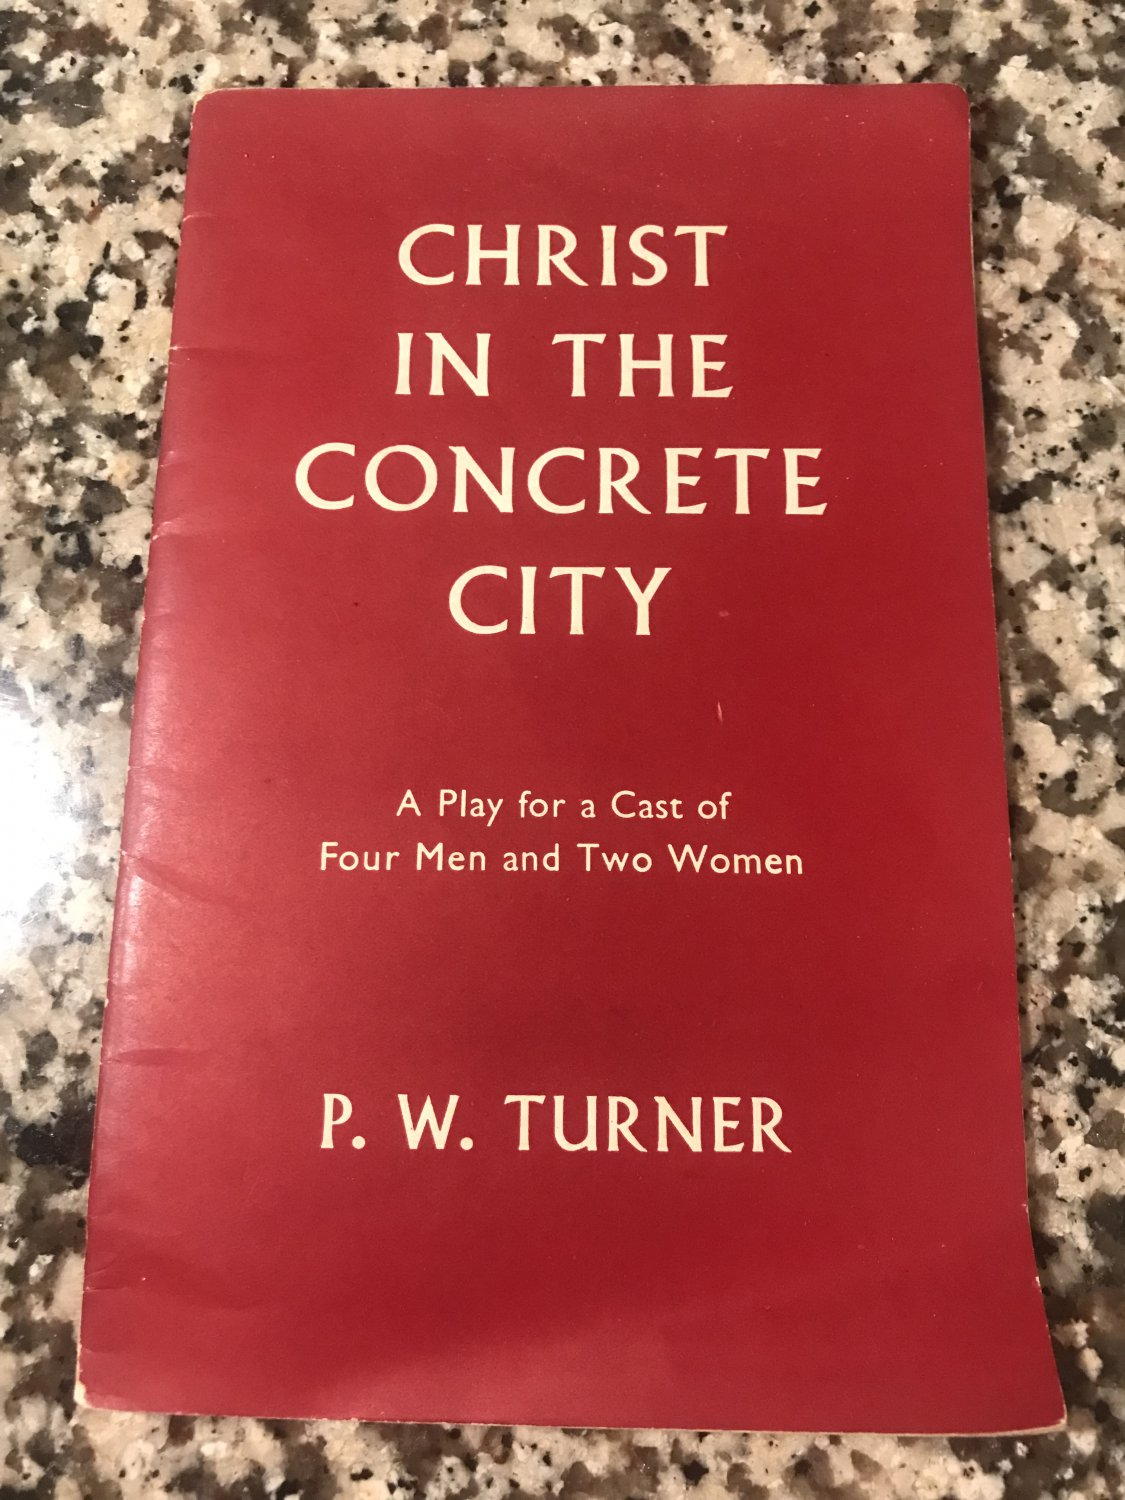 Christ in the Concrete City: A Play for a Cast of Four Men and Two Women 1963 by P. W. Turner